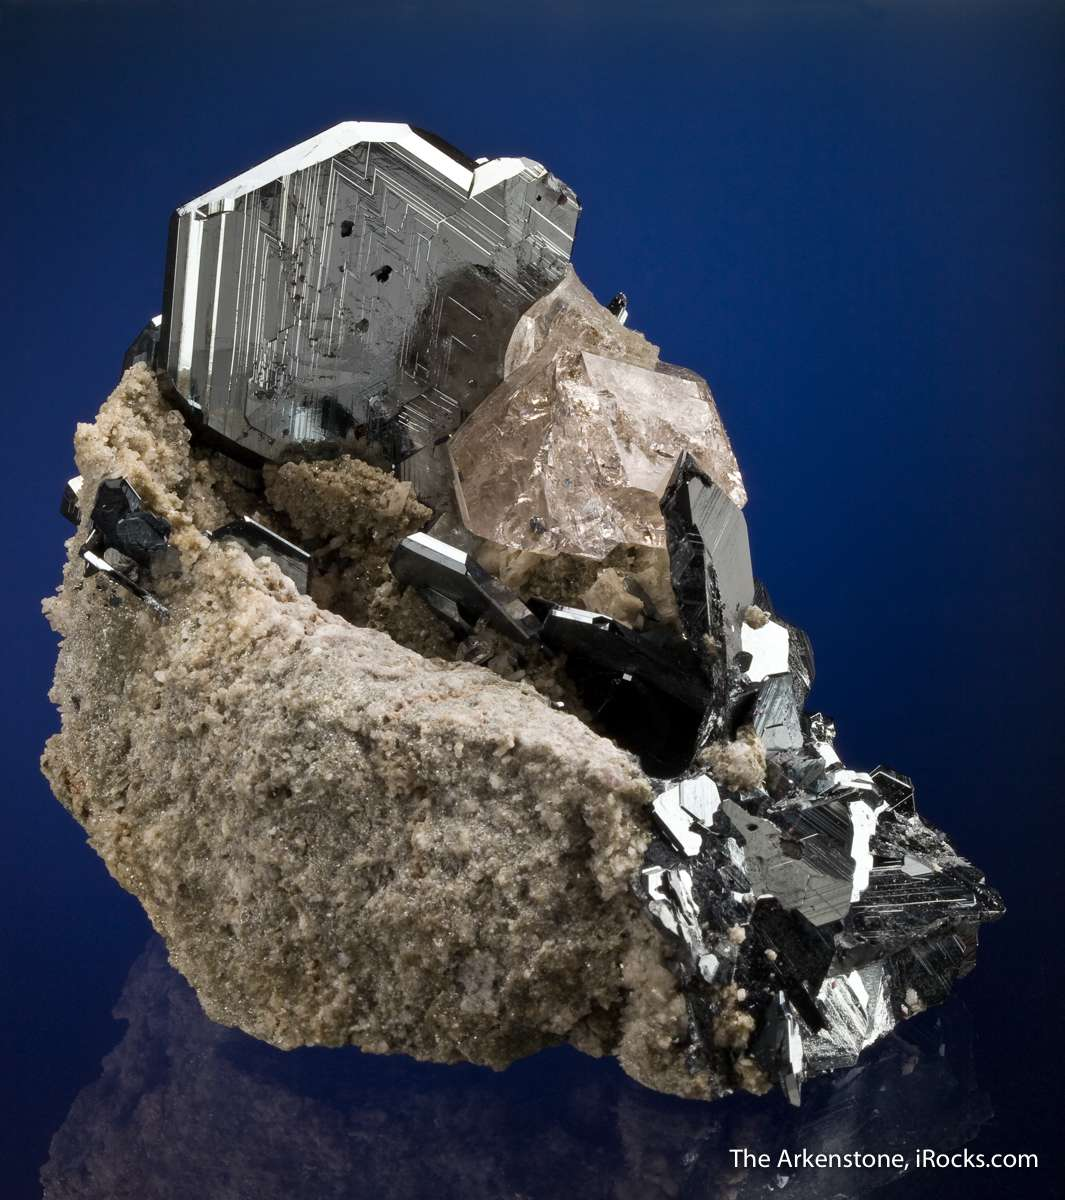 Cavradi hematites iconic mineral world just Swiss classics Nothing